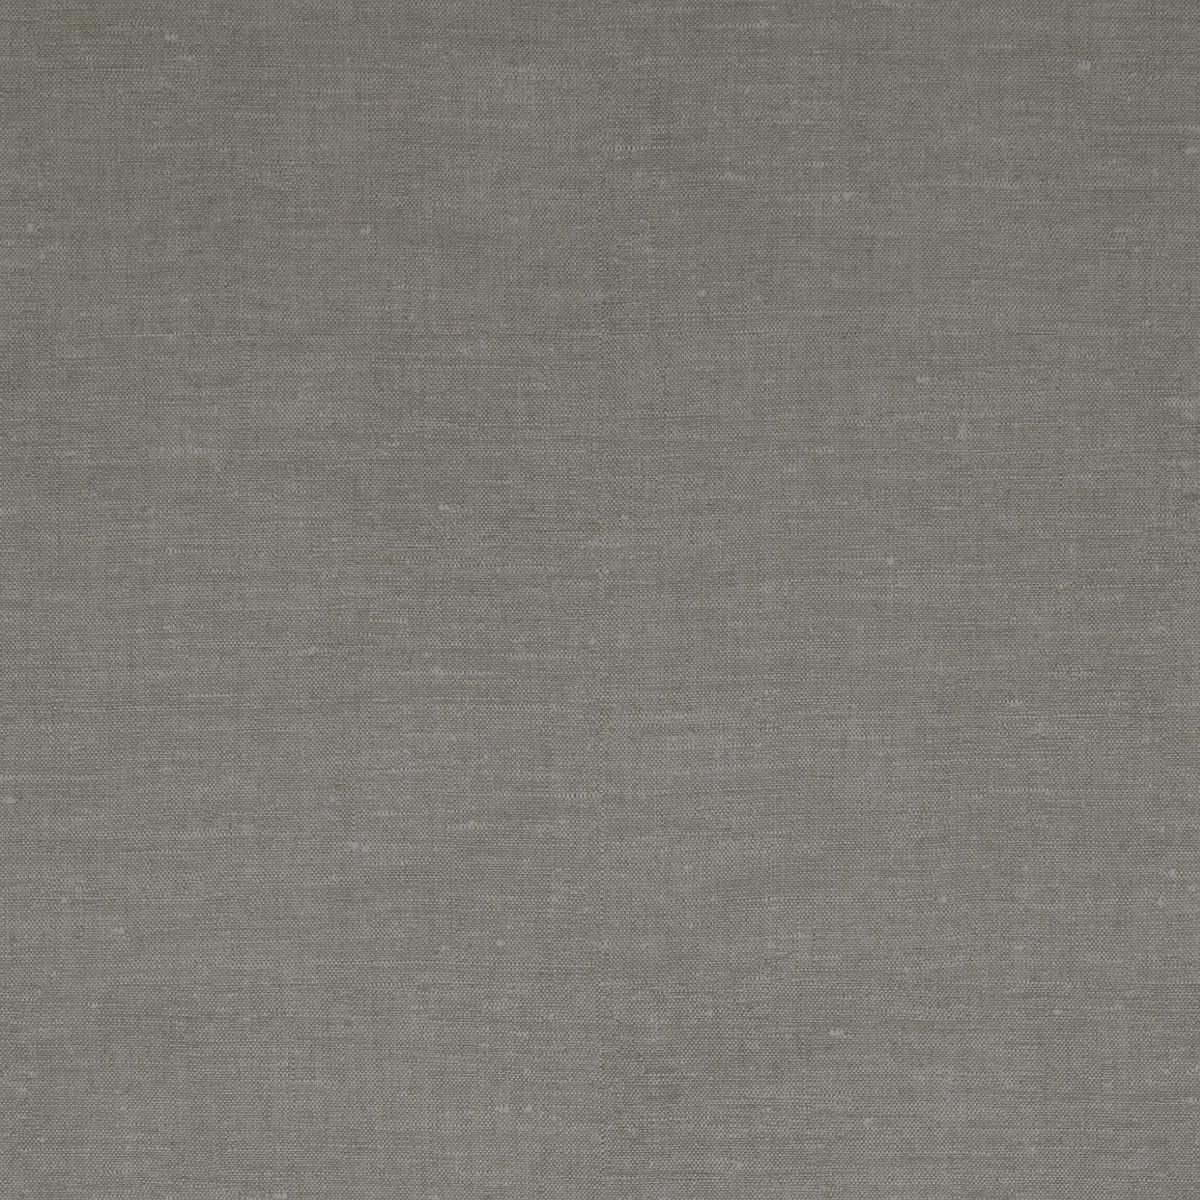 Bn Wallcoverings Non Woven Wallpaper Riviera Maison 18348